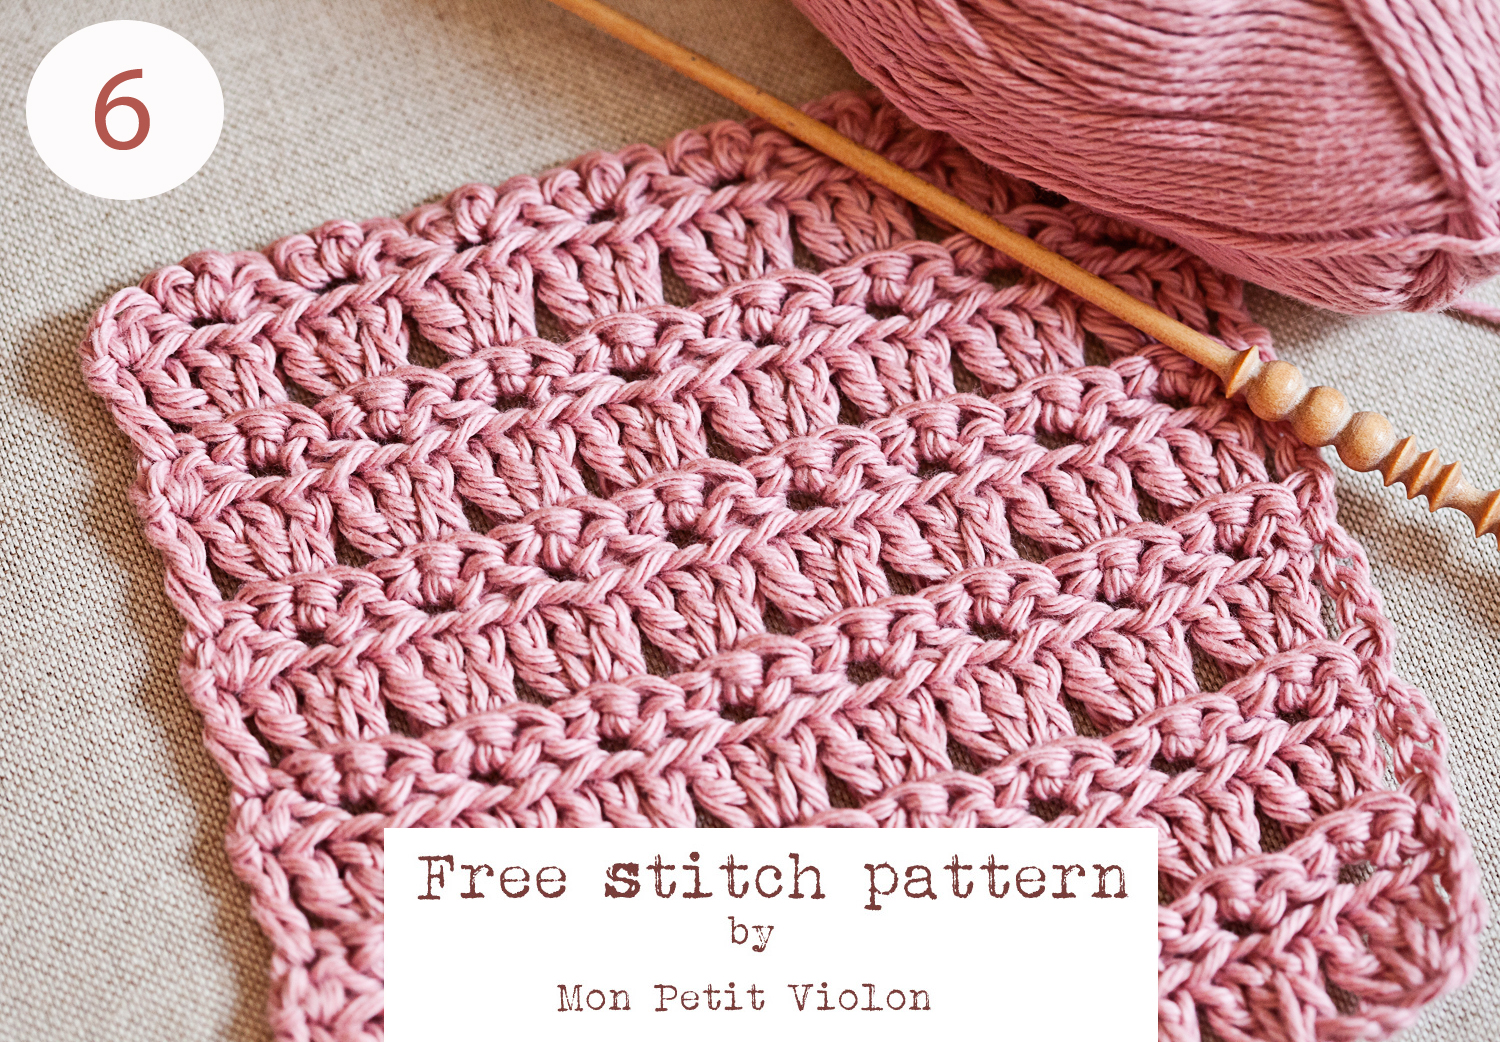 New Free Stitch pattern to try this weekend!